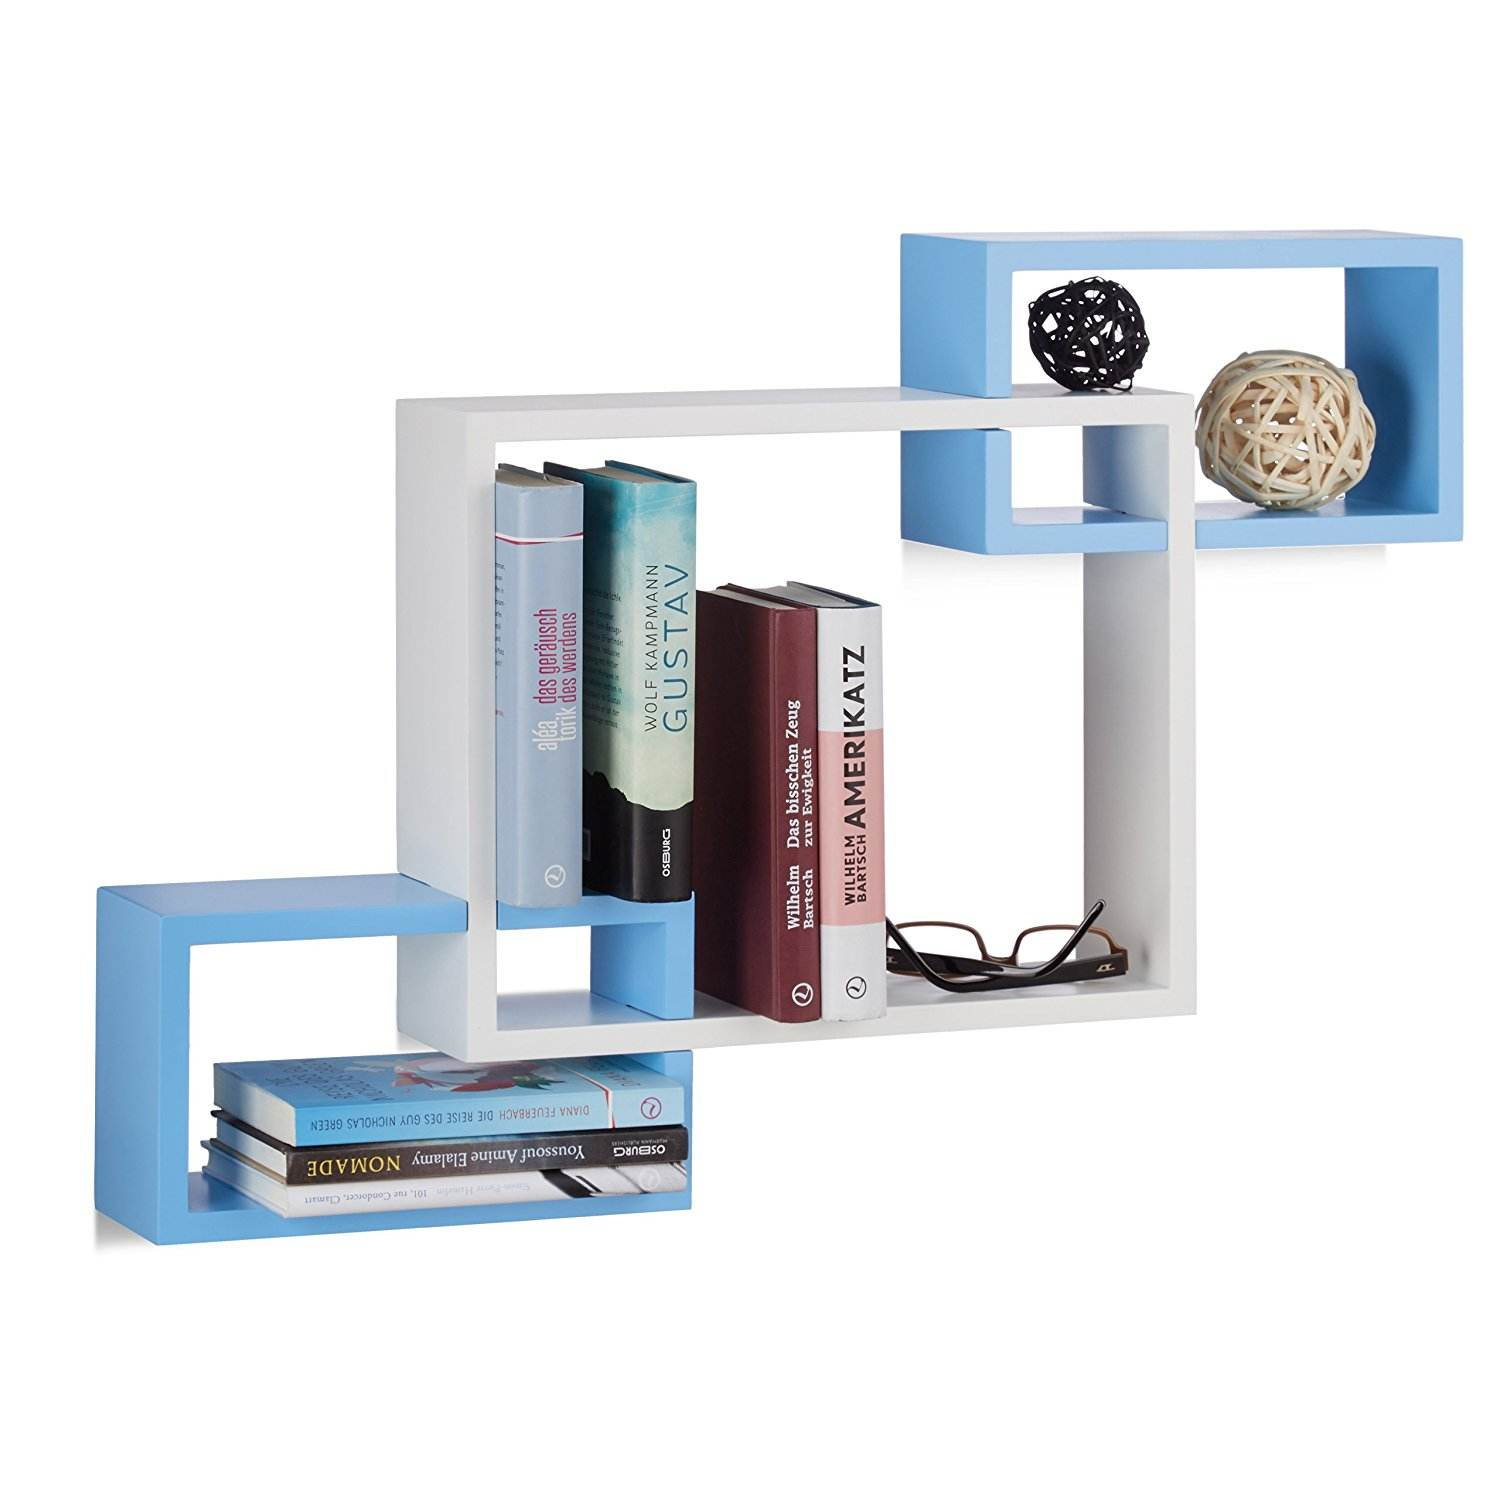 Connected Cube Wooden Floating Wand montage <span class=keywords><strong>CD</strong></span> <span class=keywords><strong>DVD</strong></span> Book Storage Display Regale